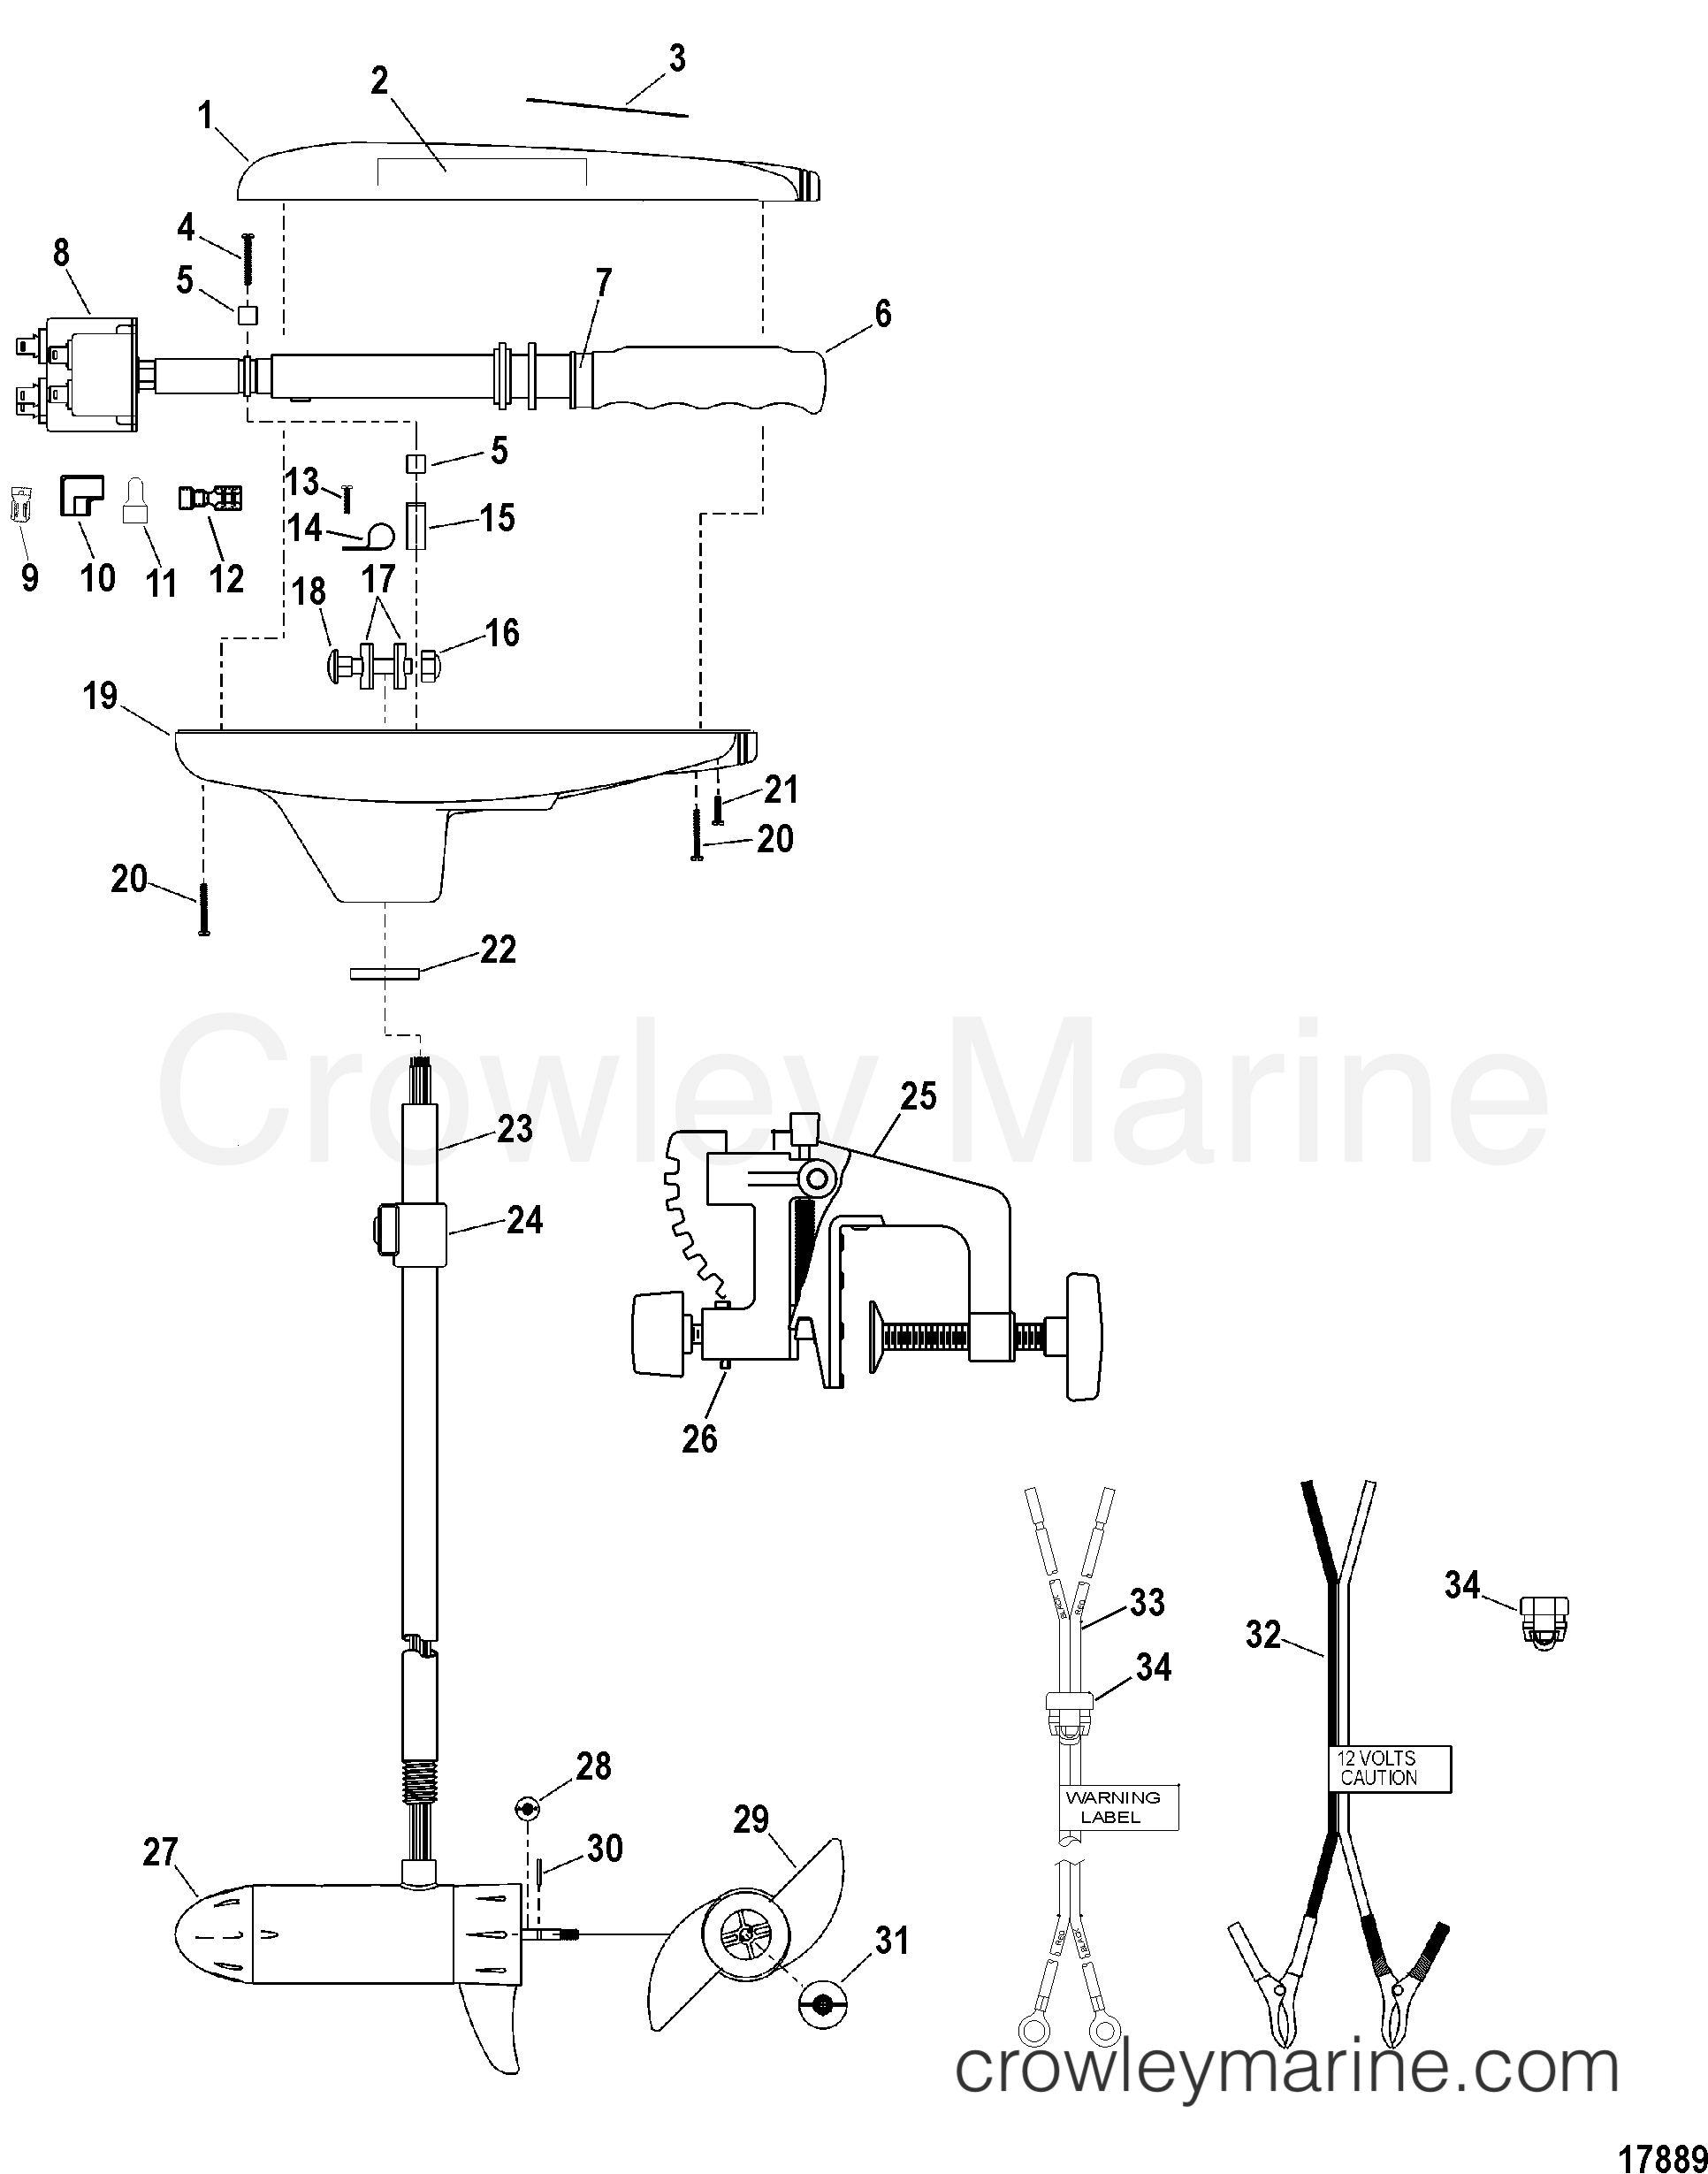 o4xTn4xJ complete trolling motor(model t34) (12 volt) 2004 motorguide 12v wiring diagram for 12 24 volt trolling motor at virtualis.co